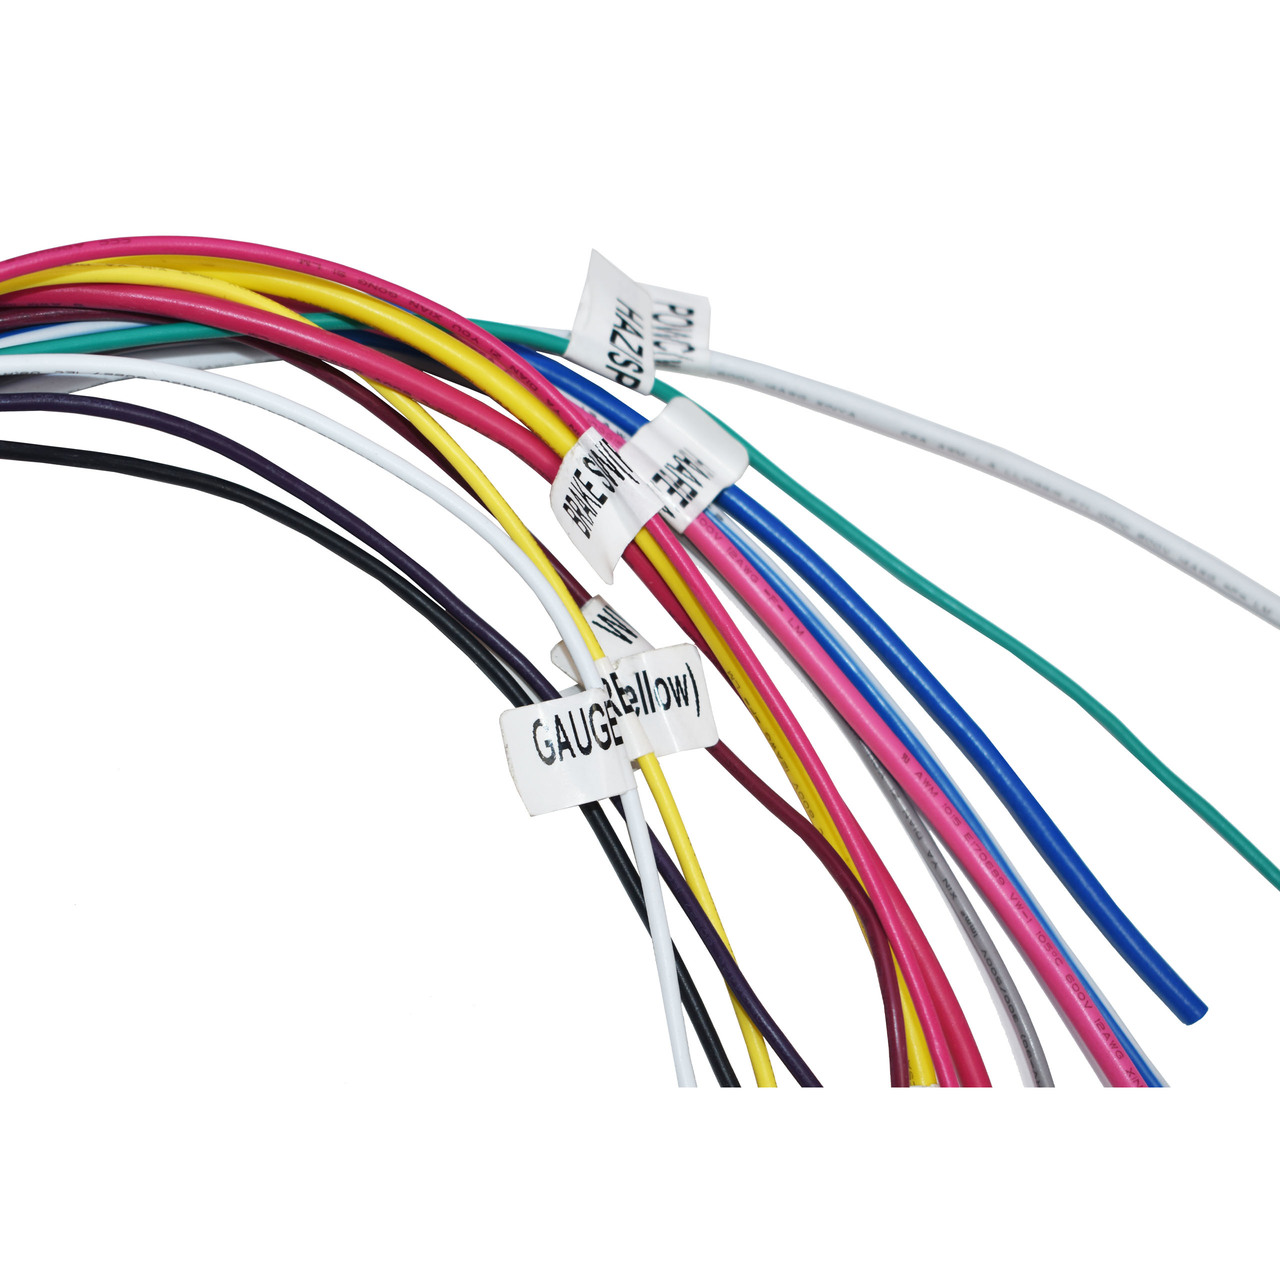 A-Team Performance 12 Circuit Universal Wire Harness Muscle Car Hot Rod Street Rod XL Wires